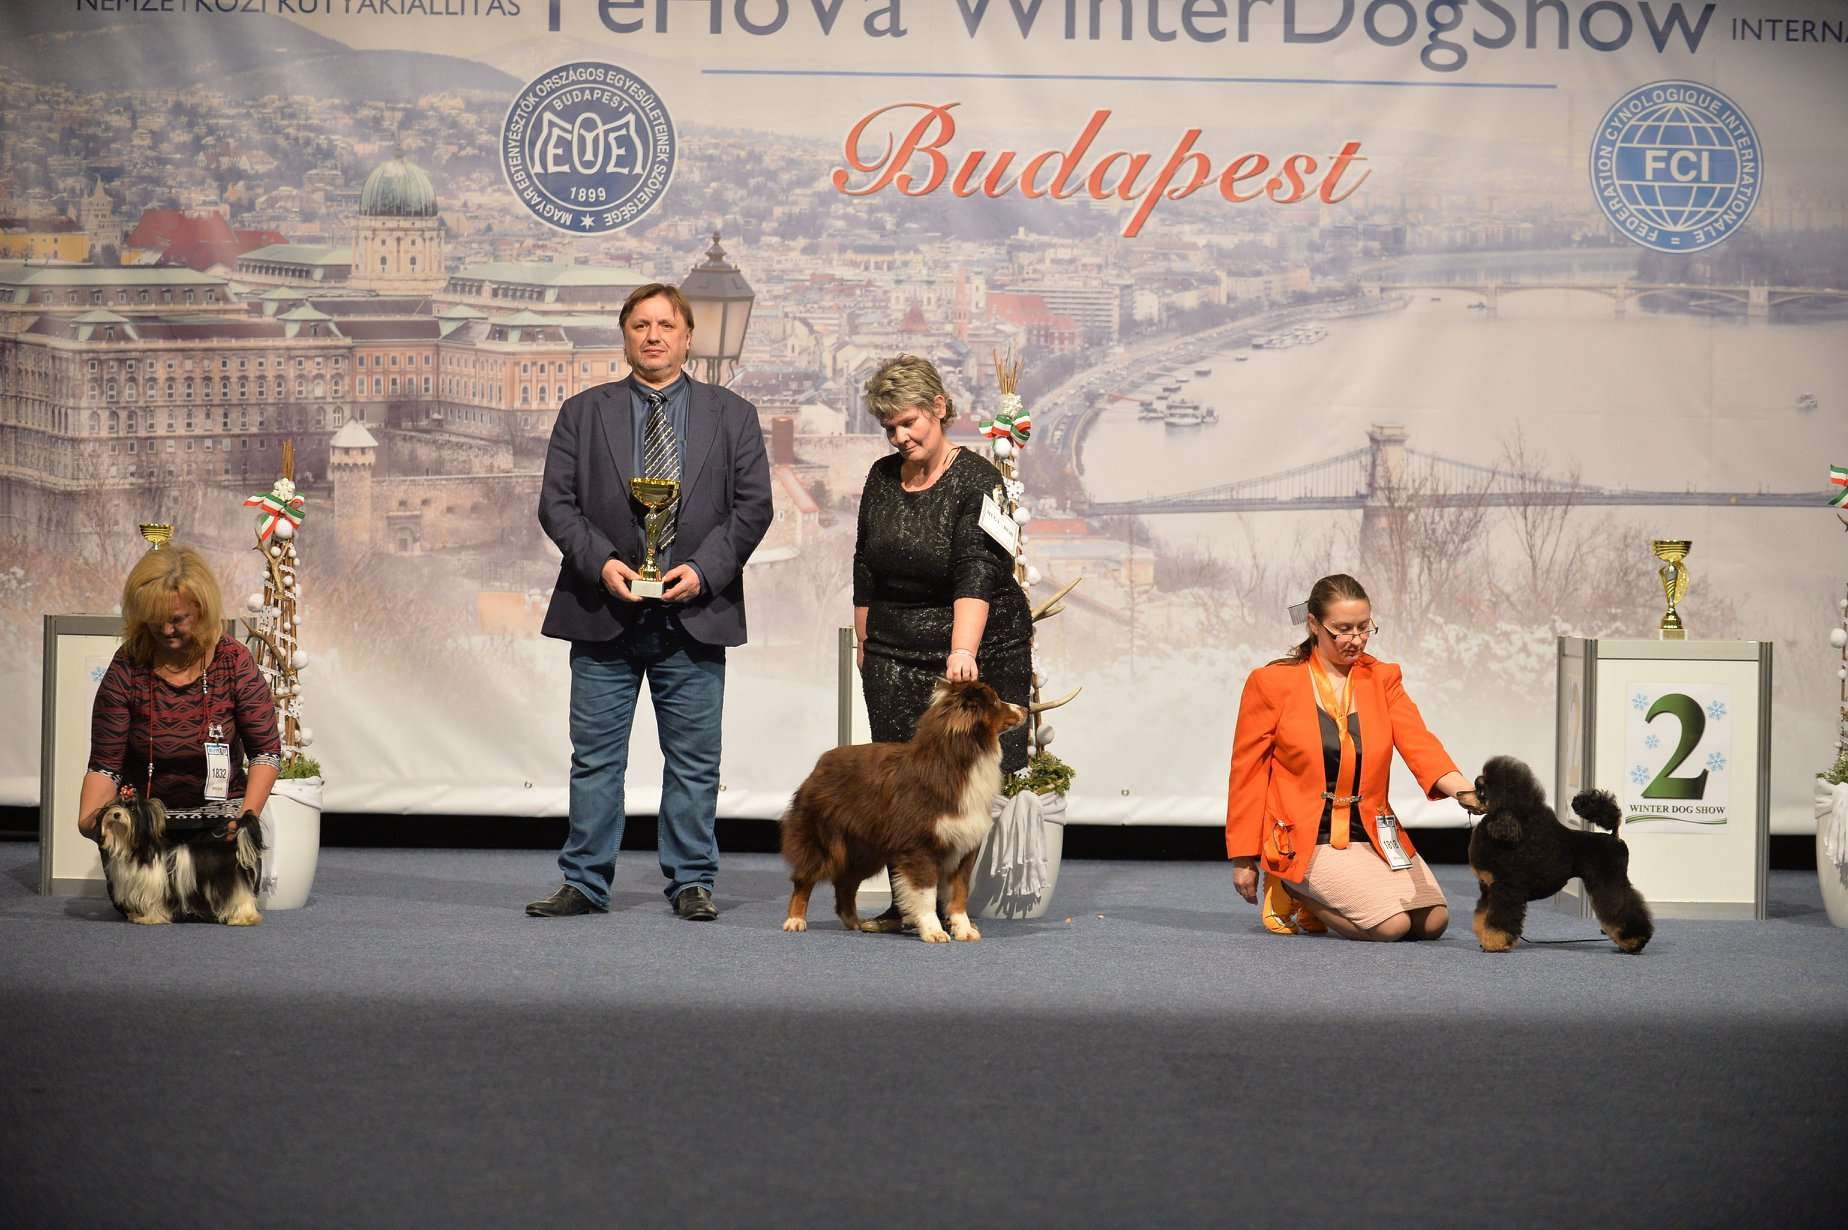 Winter Dog Show 2019